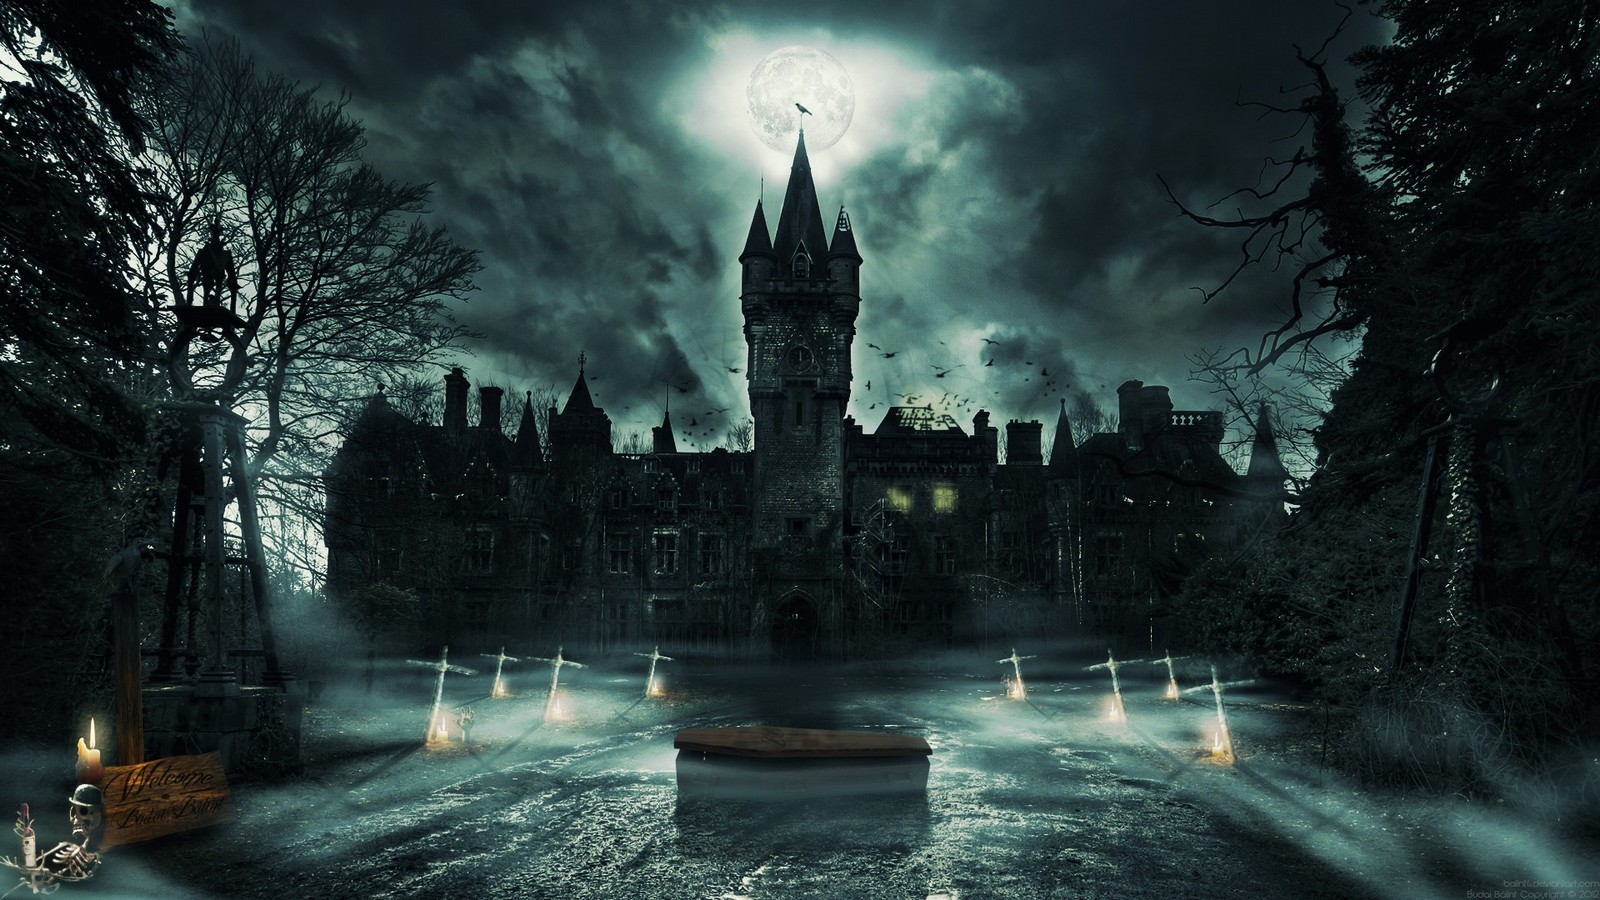 Free haunted house wallpaper wallpapersafari for 3d wallpaper of house